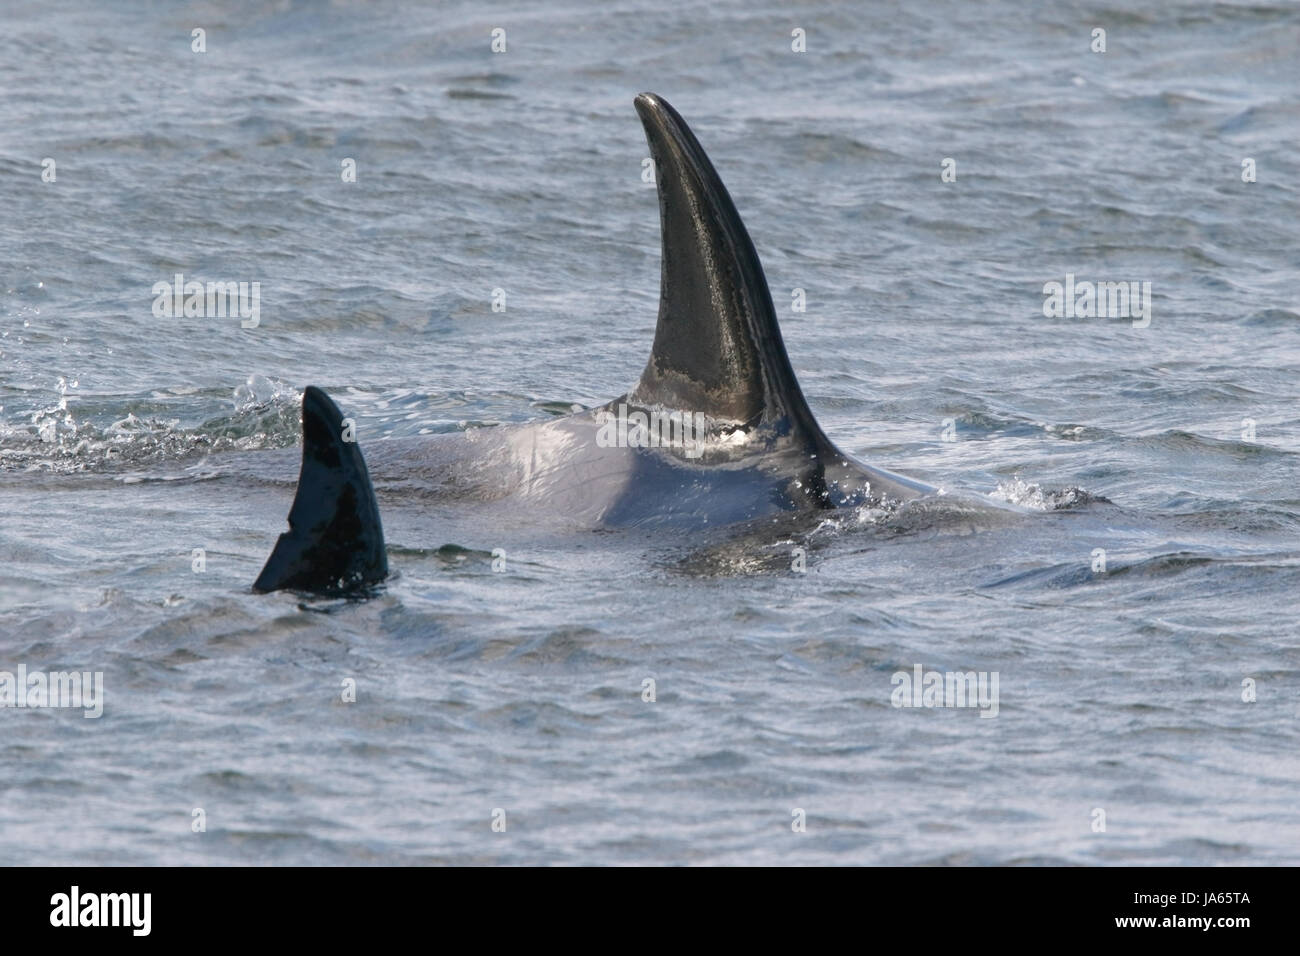 orca or killer whale (Orcinus orca), showing dorsal fin of two animals swimming in sea off Falkland Islands - Stock Image